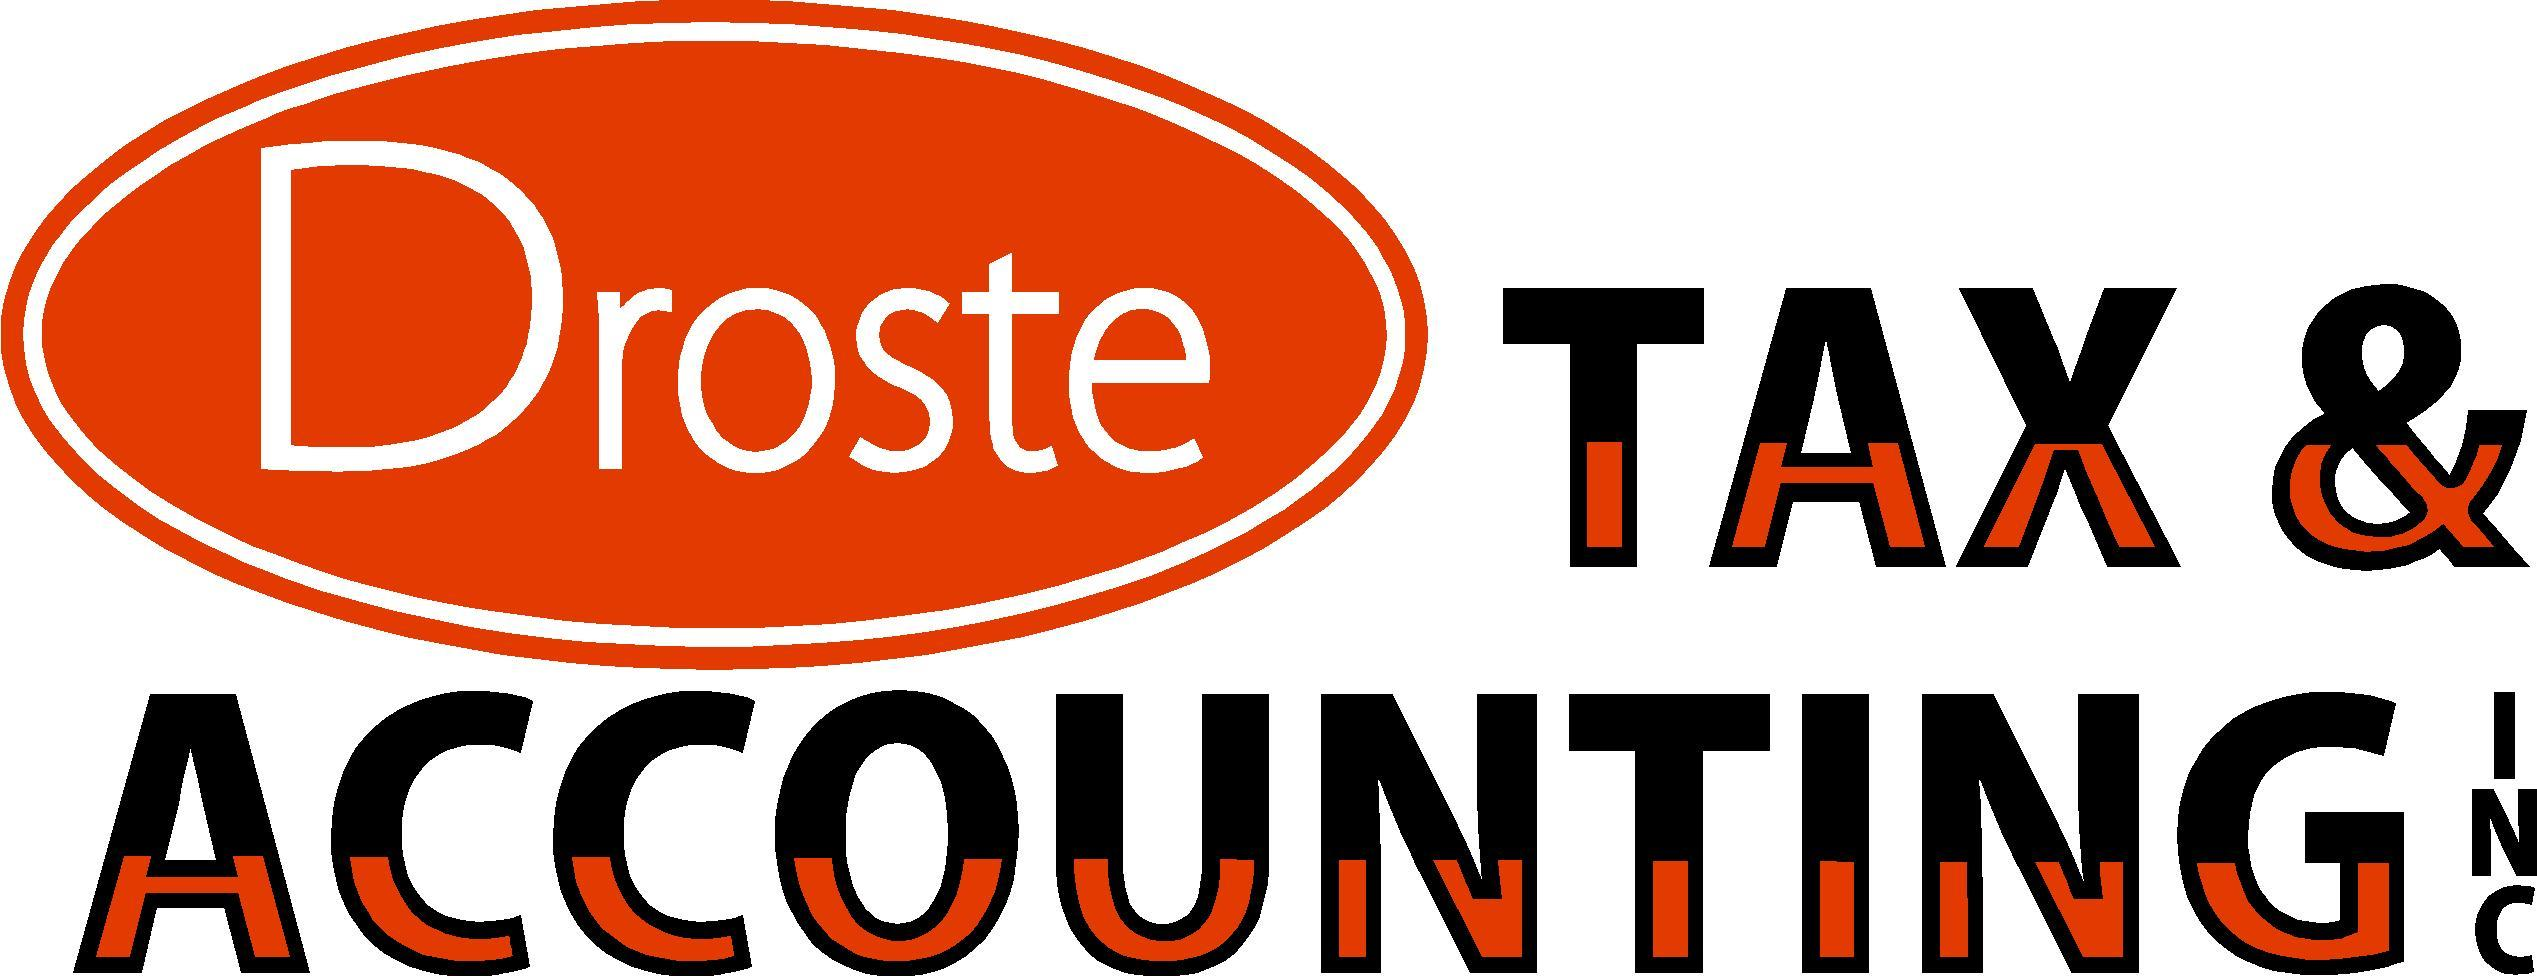 Droste Tax & Accounting